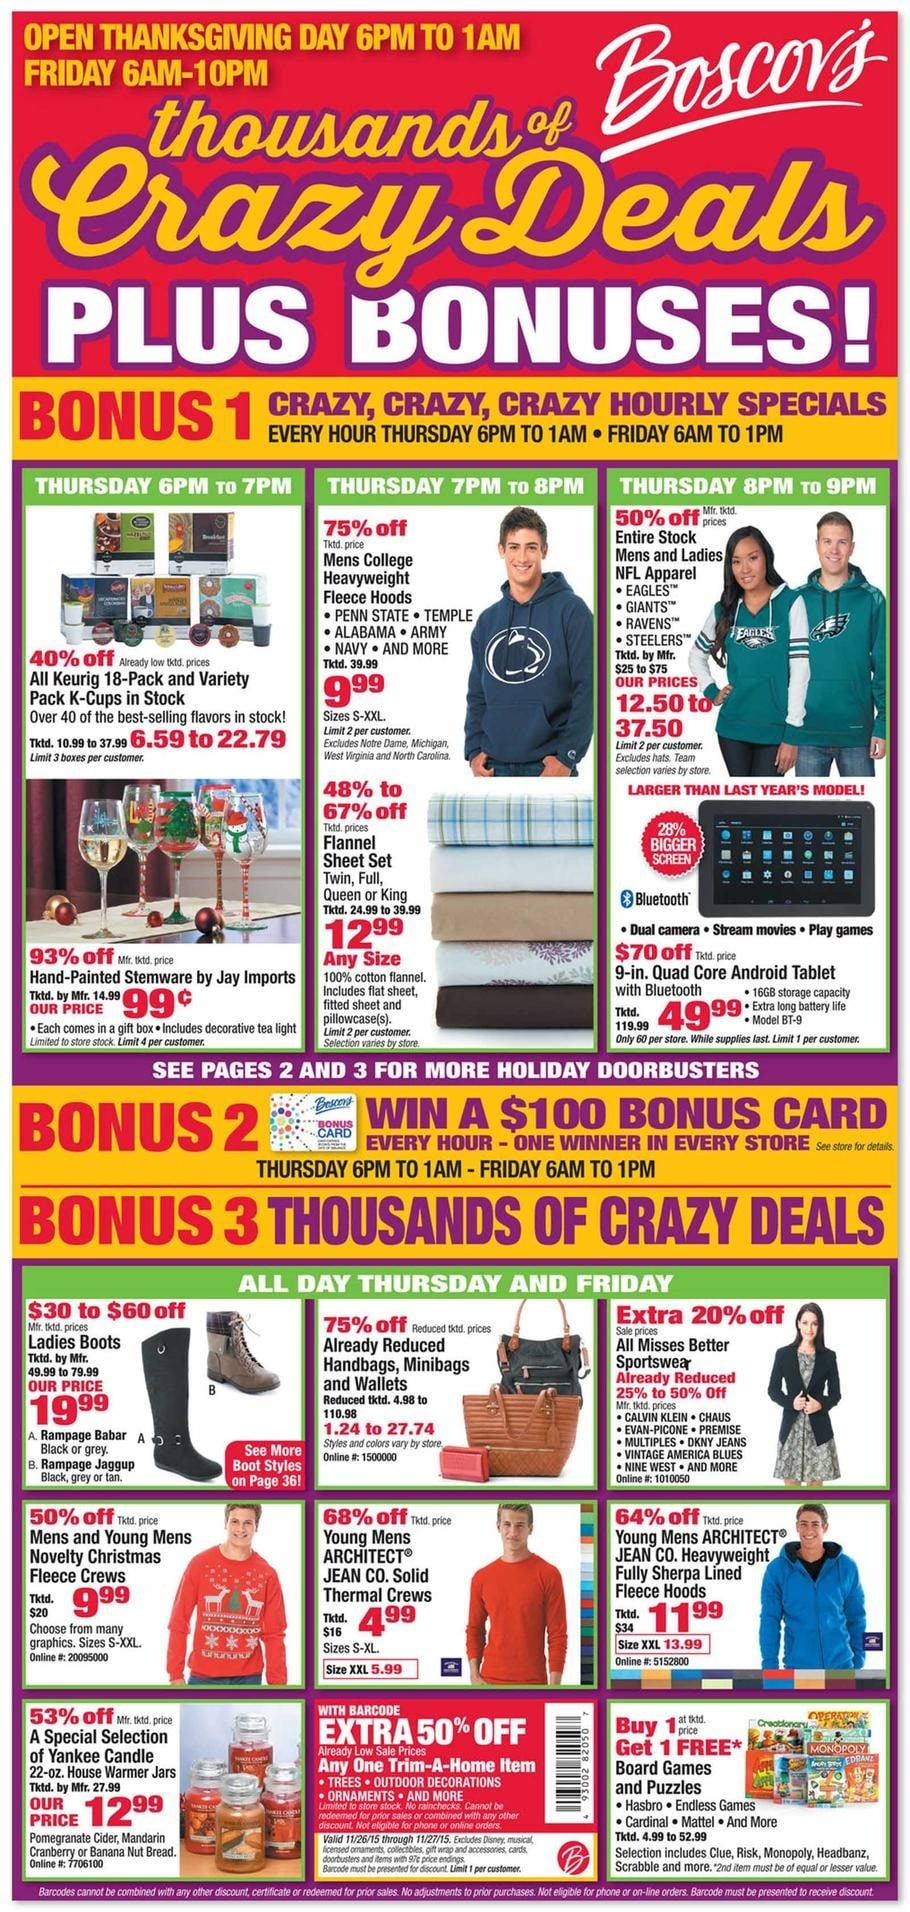 Boscov s Black Friday Ad 2015 ed32e43d0